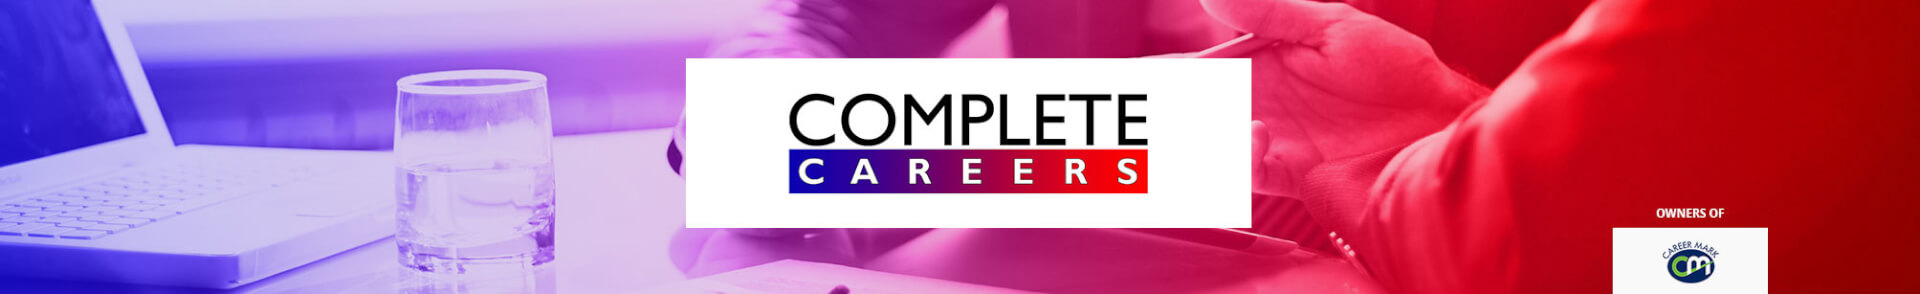 Complete Careers Banner